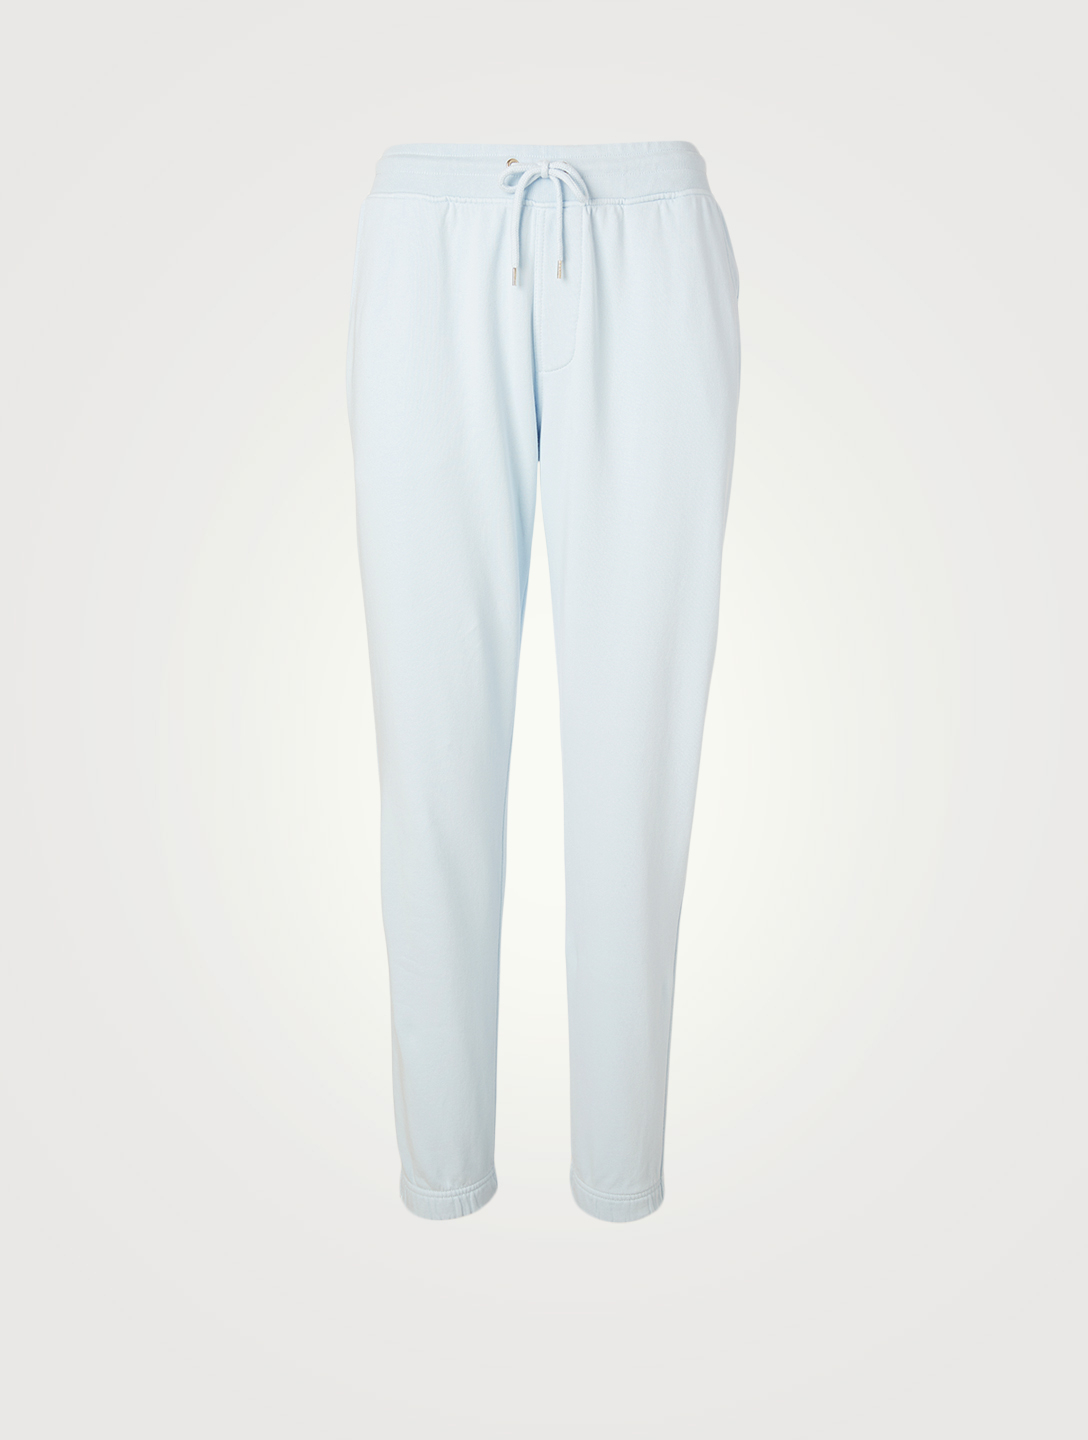 COLORFUL STANDARD Classic Organic Cotton Sweatpants Women's Blue